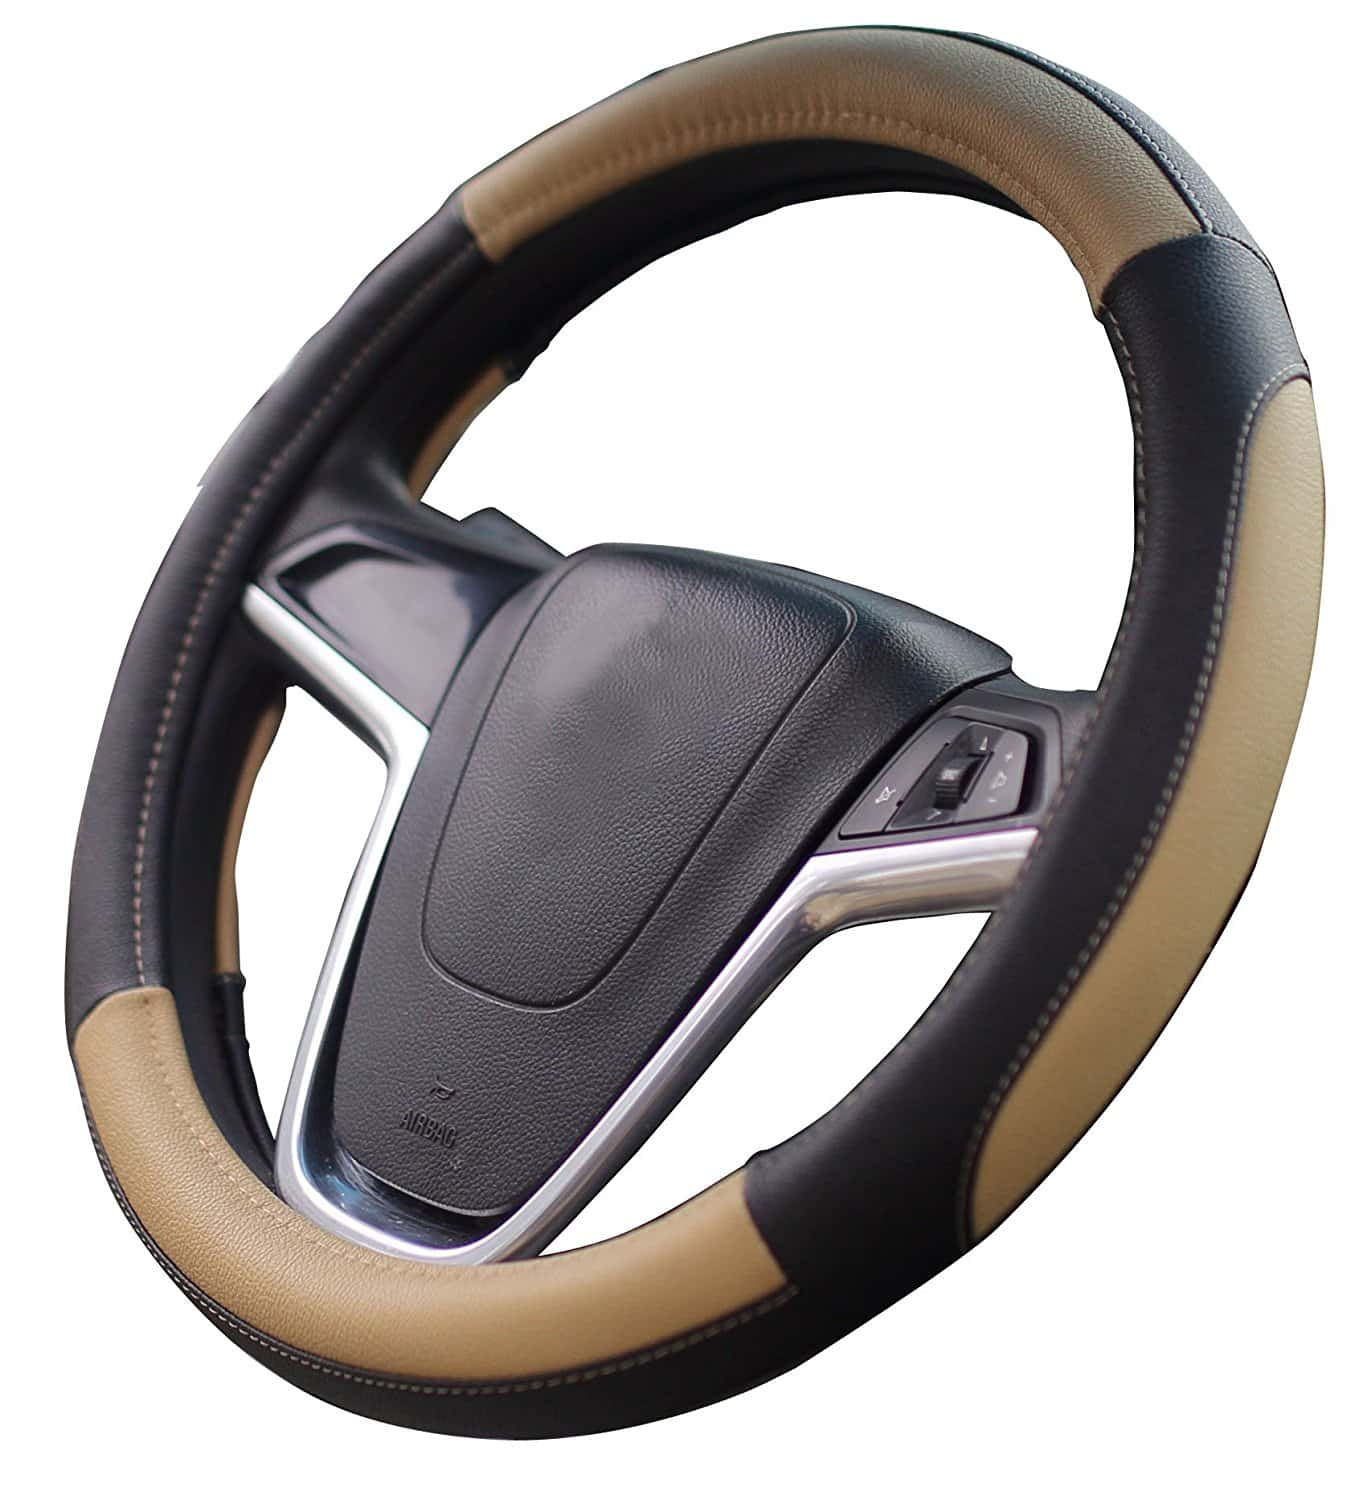 decorative steering wheel covers